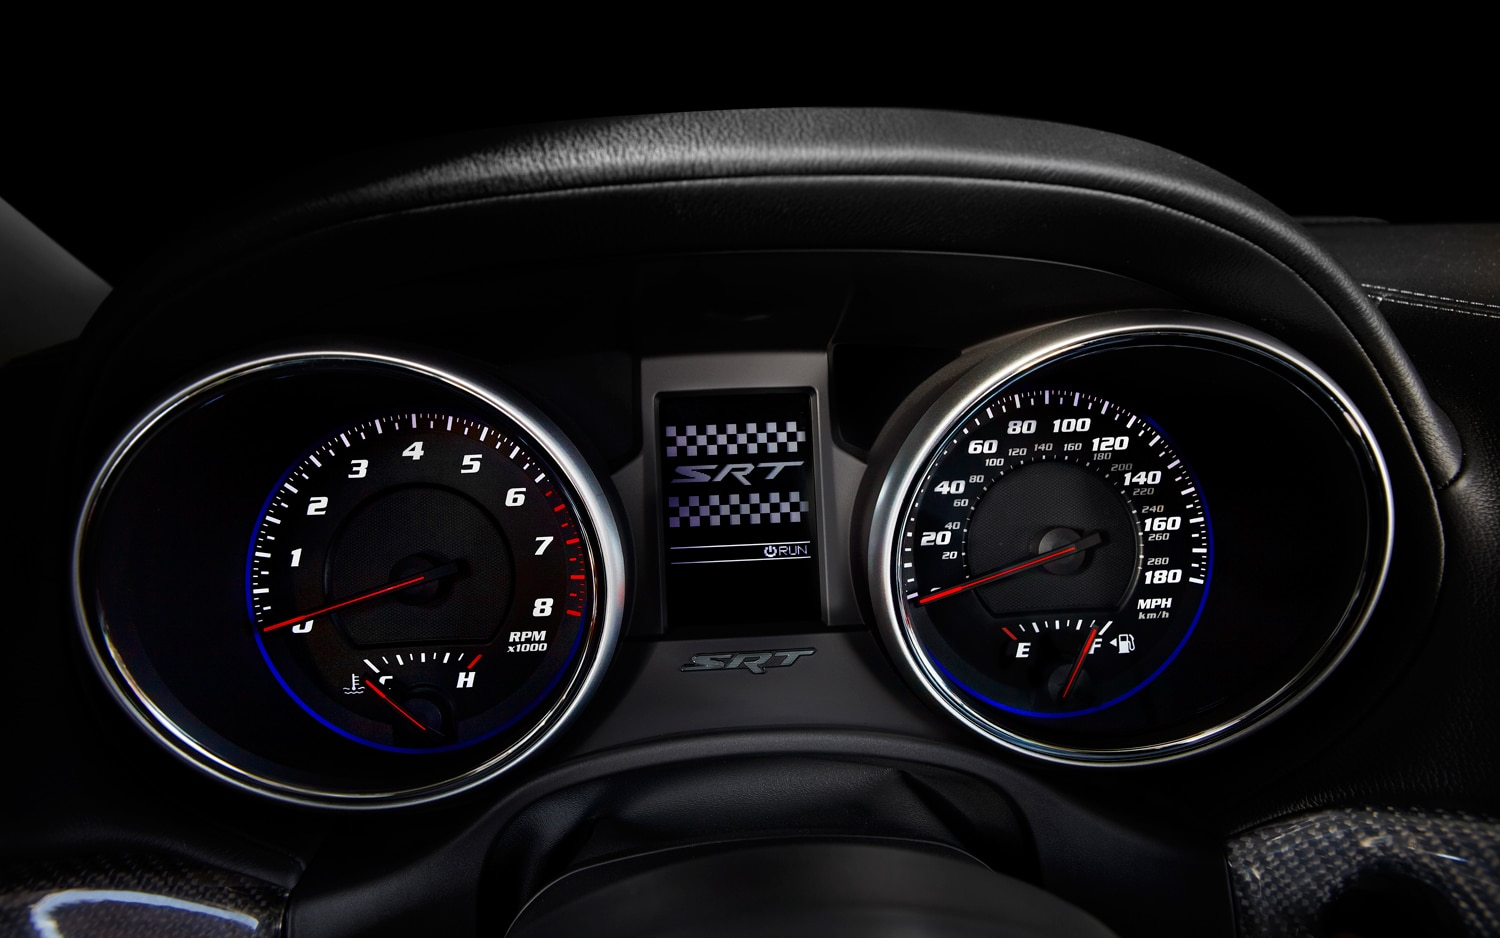 2012 Jeep Grand Cherokee SRT8 Gauges